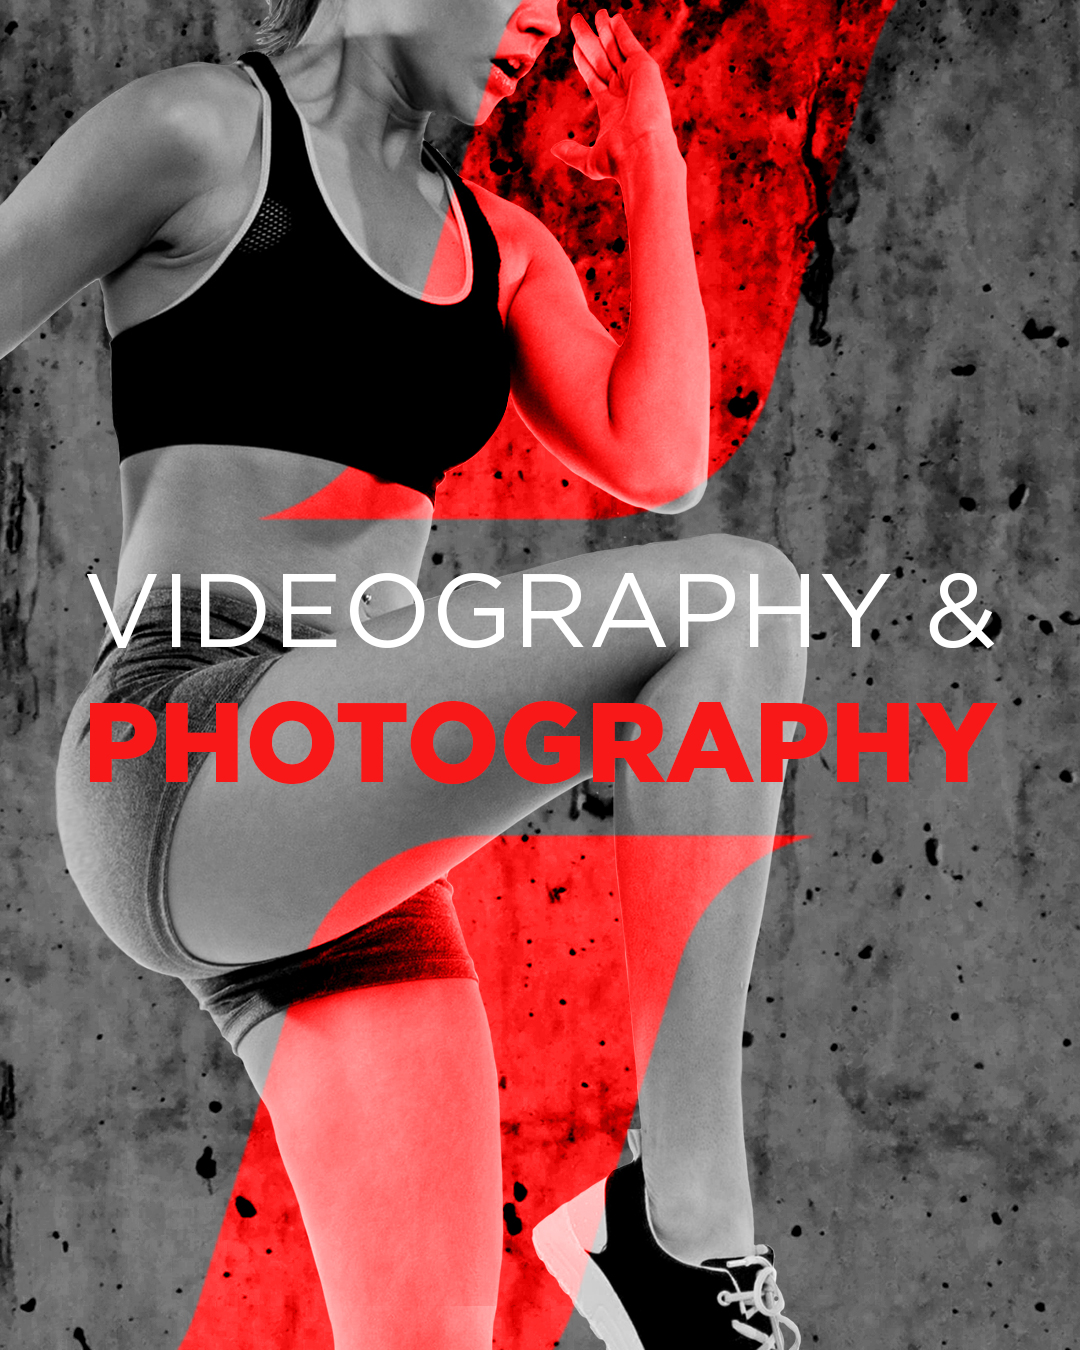 Videography, Photography, Studio Shoot, Location Shoot, Professional Photo and Video Shoots